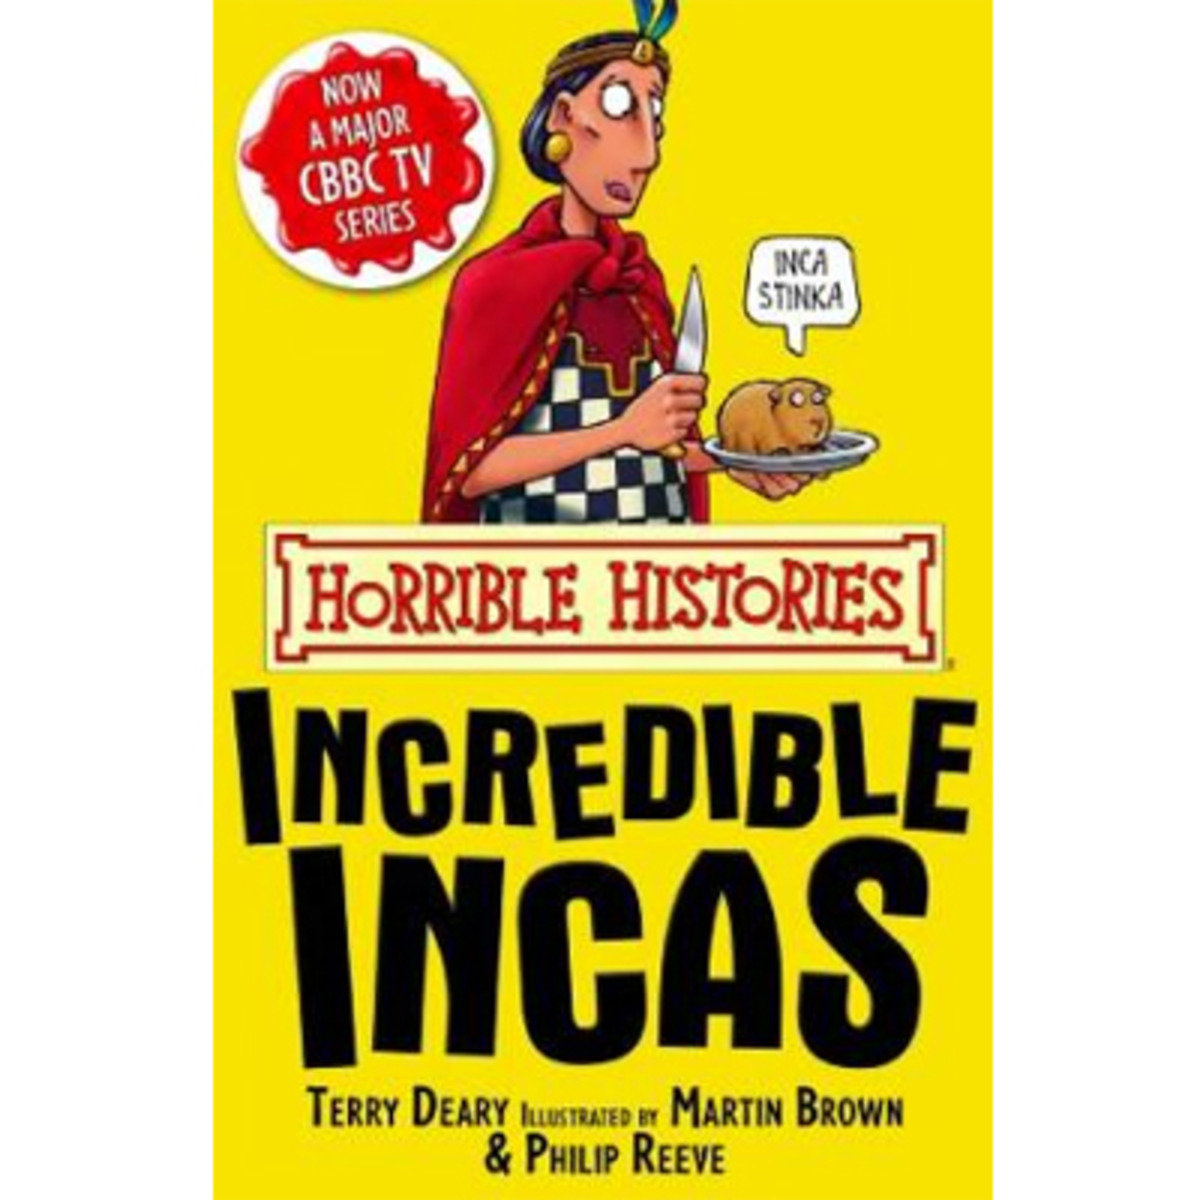 HORRIBLE HISTORIES: THE INCREDIBLE INCAS 9781407104270